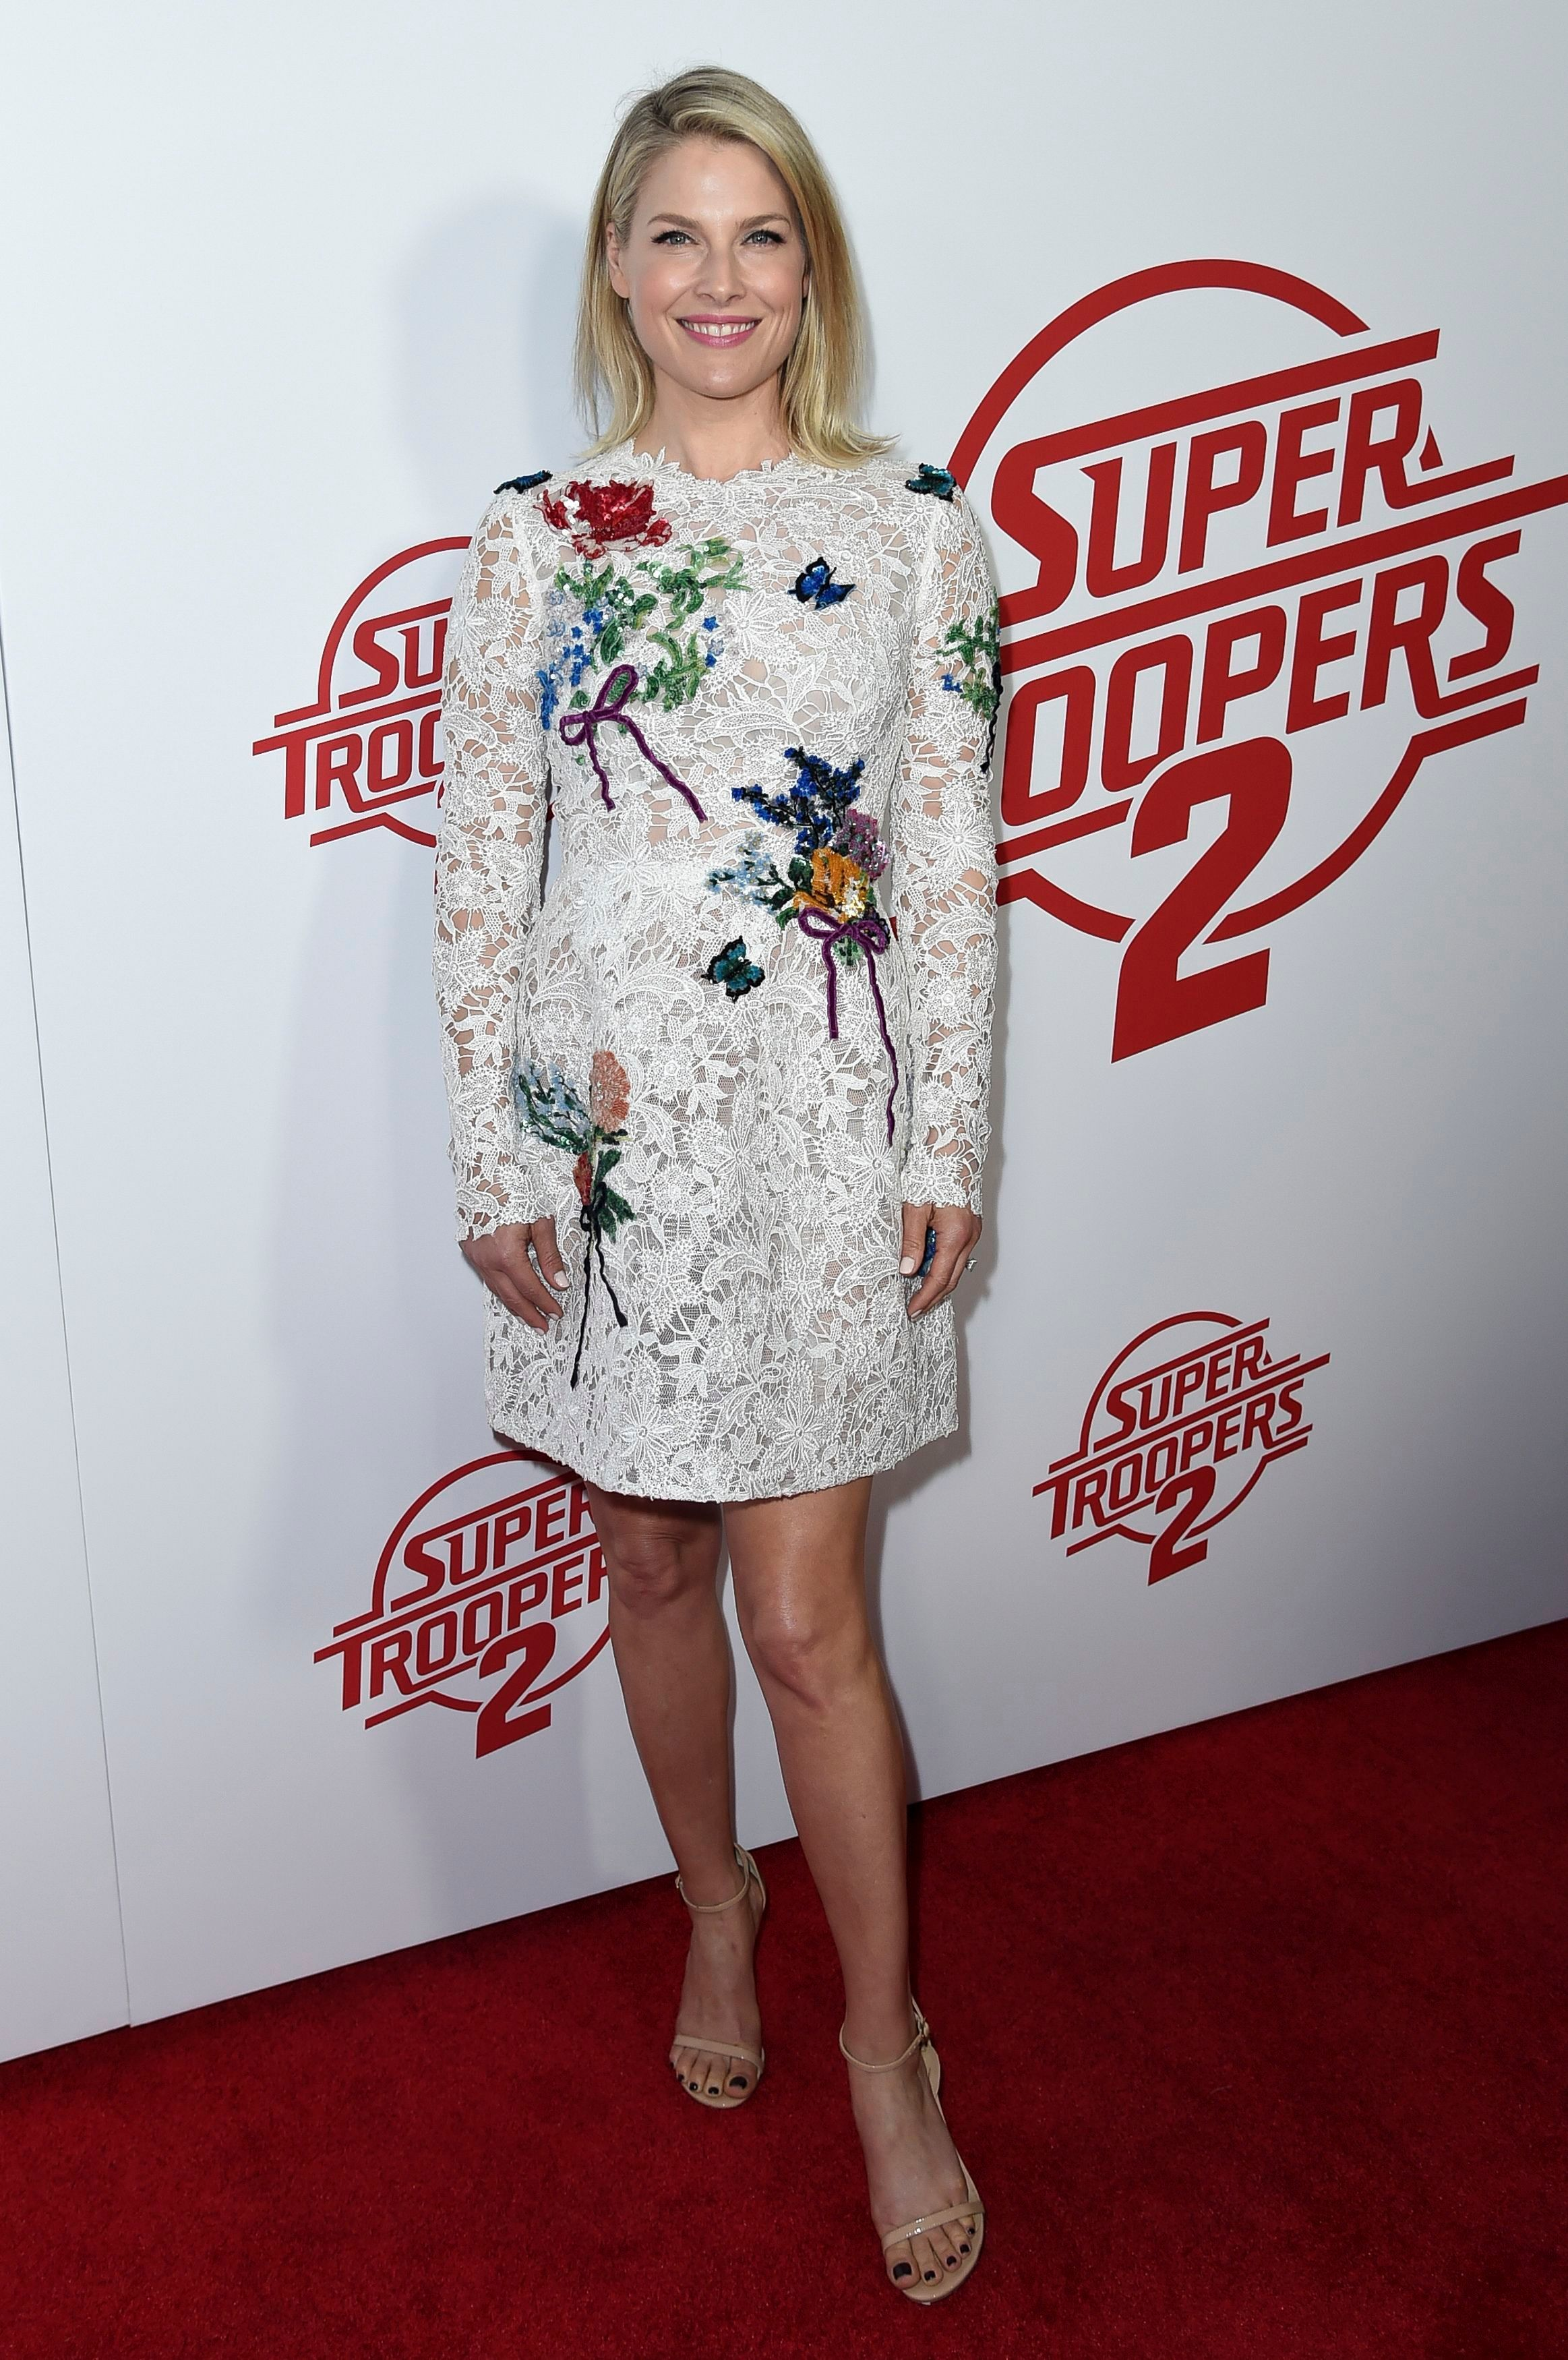 """Ali Larter attends the premiere of """"Super Troopers 2"""" in Los Angeles on April 11, 2018."""